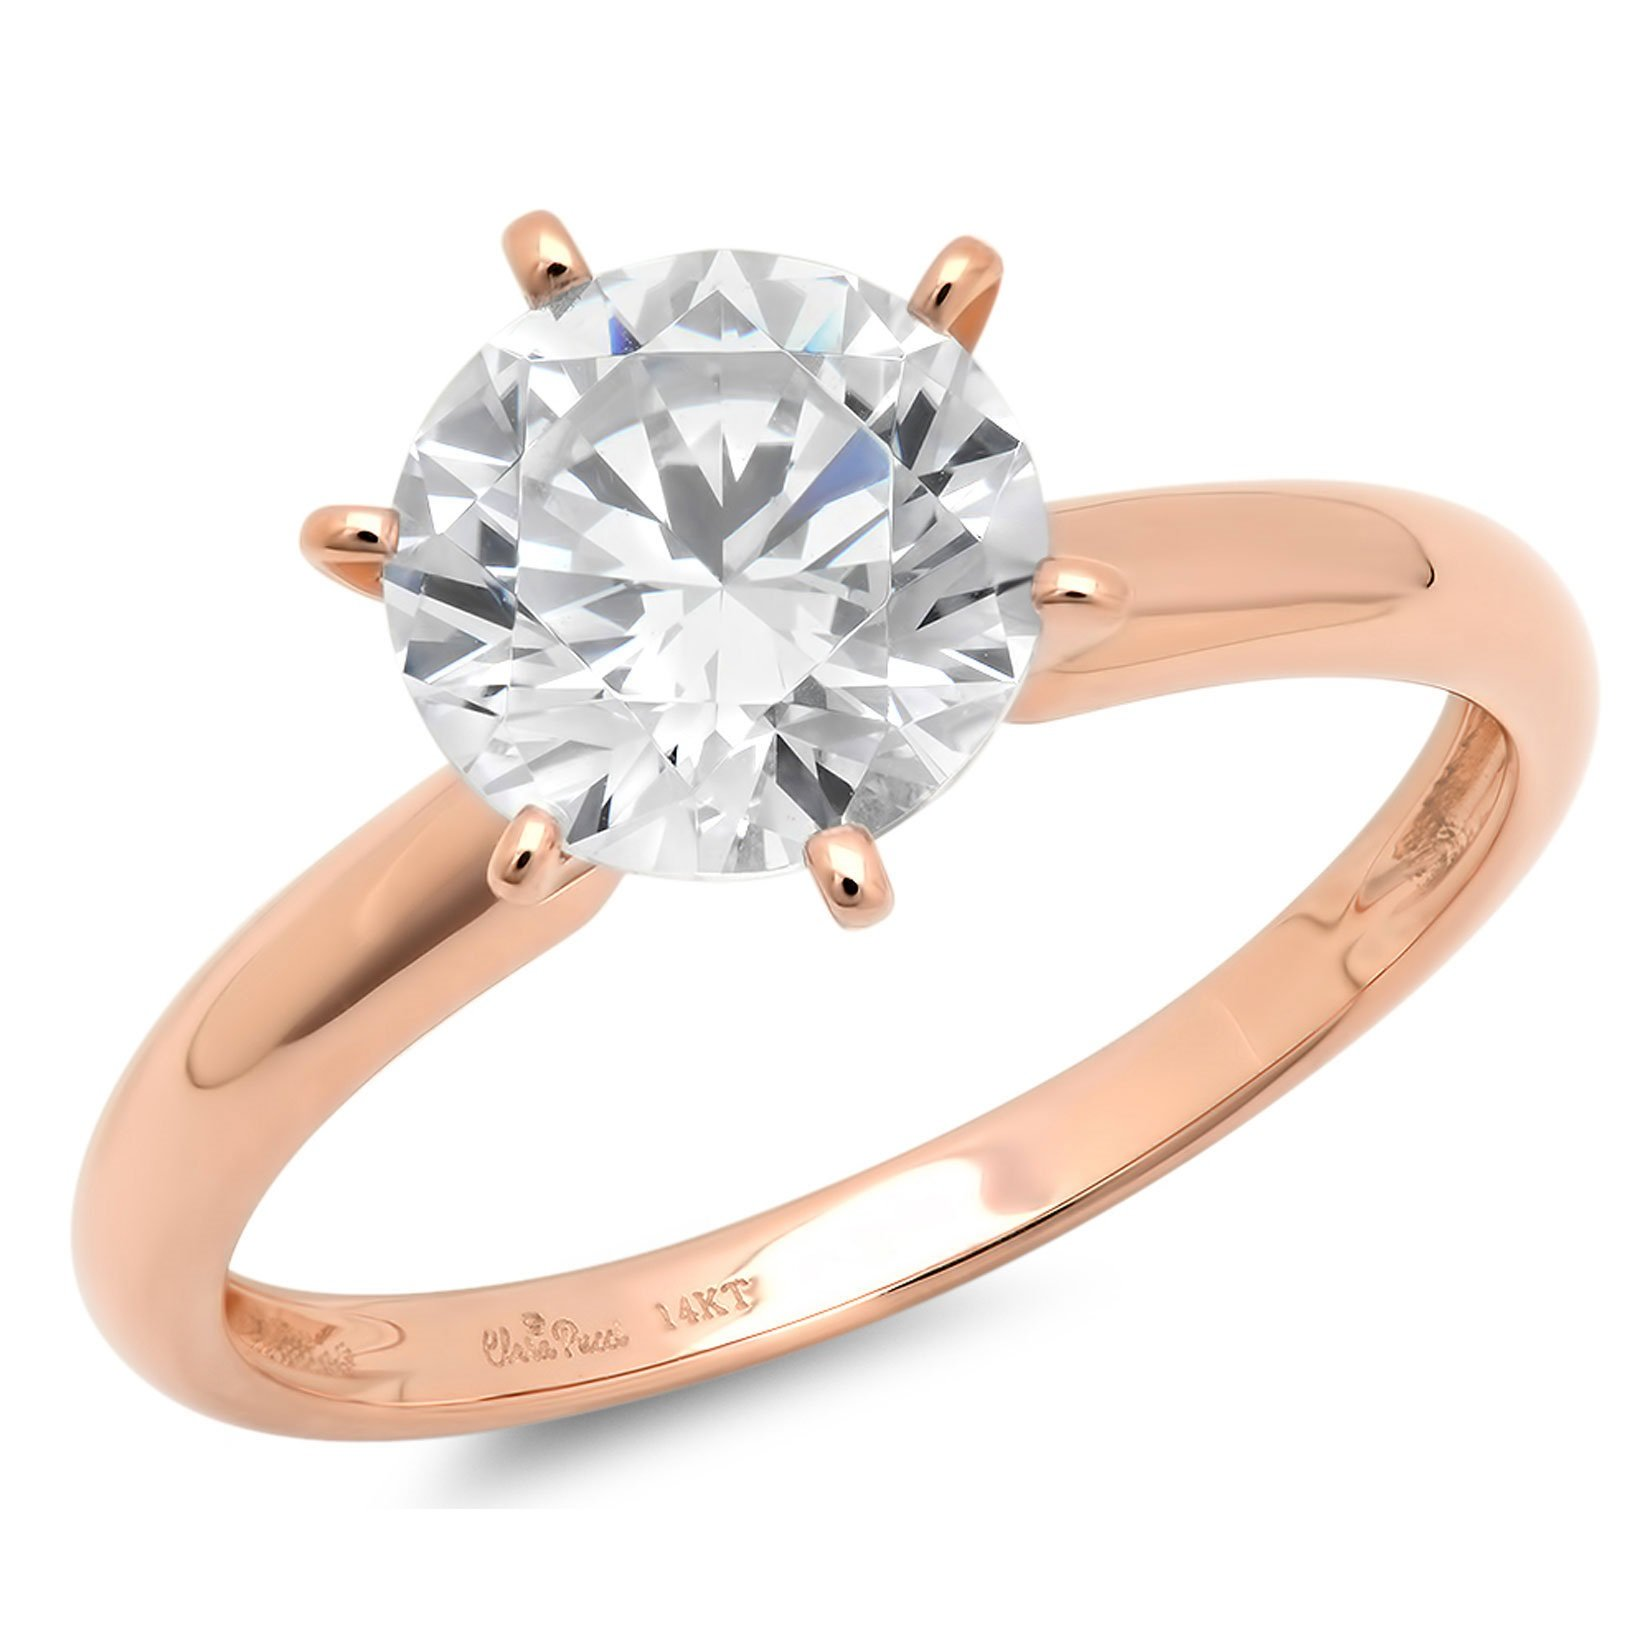 2.8ct Round Brilliant Cut Classic Wedding Statement Anniversary Designer Bridal Solitaire Engagement Promise Ring Solid 14k Rose Gold, Clara Pucci, 10.25 by Clara Pucci